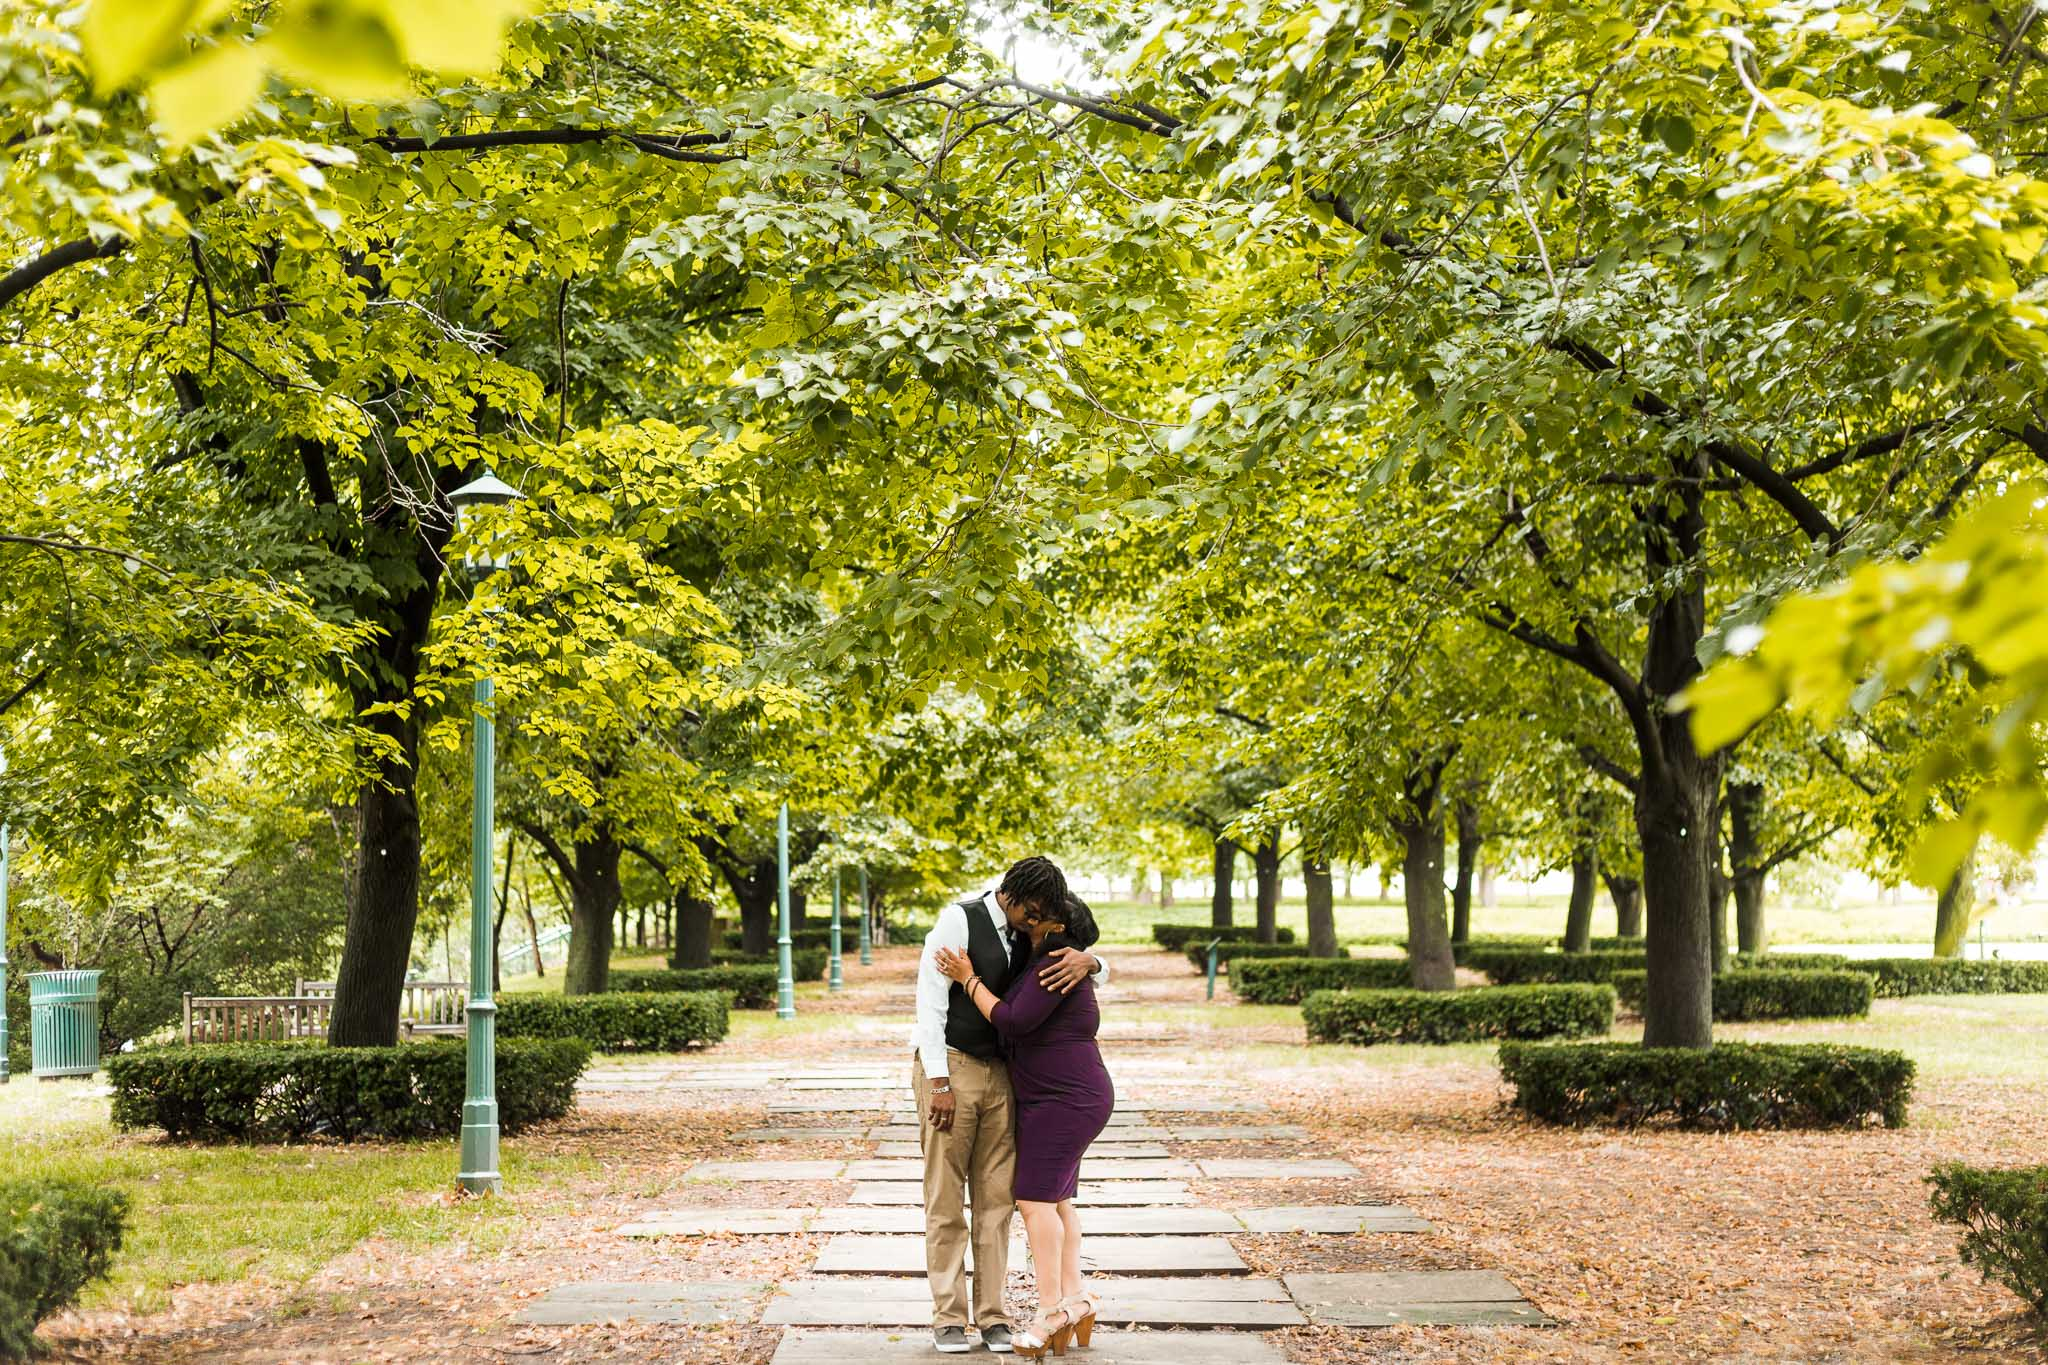 st-louis-wedding-photographer-nelson-atkins-engagement-27.jpg